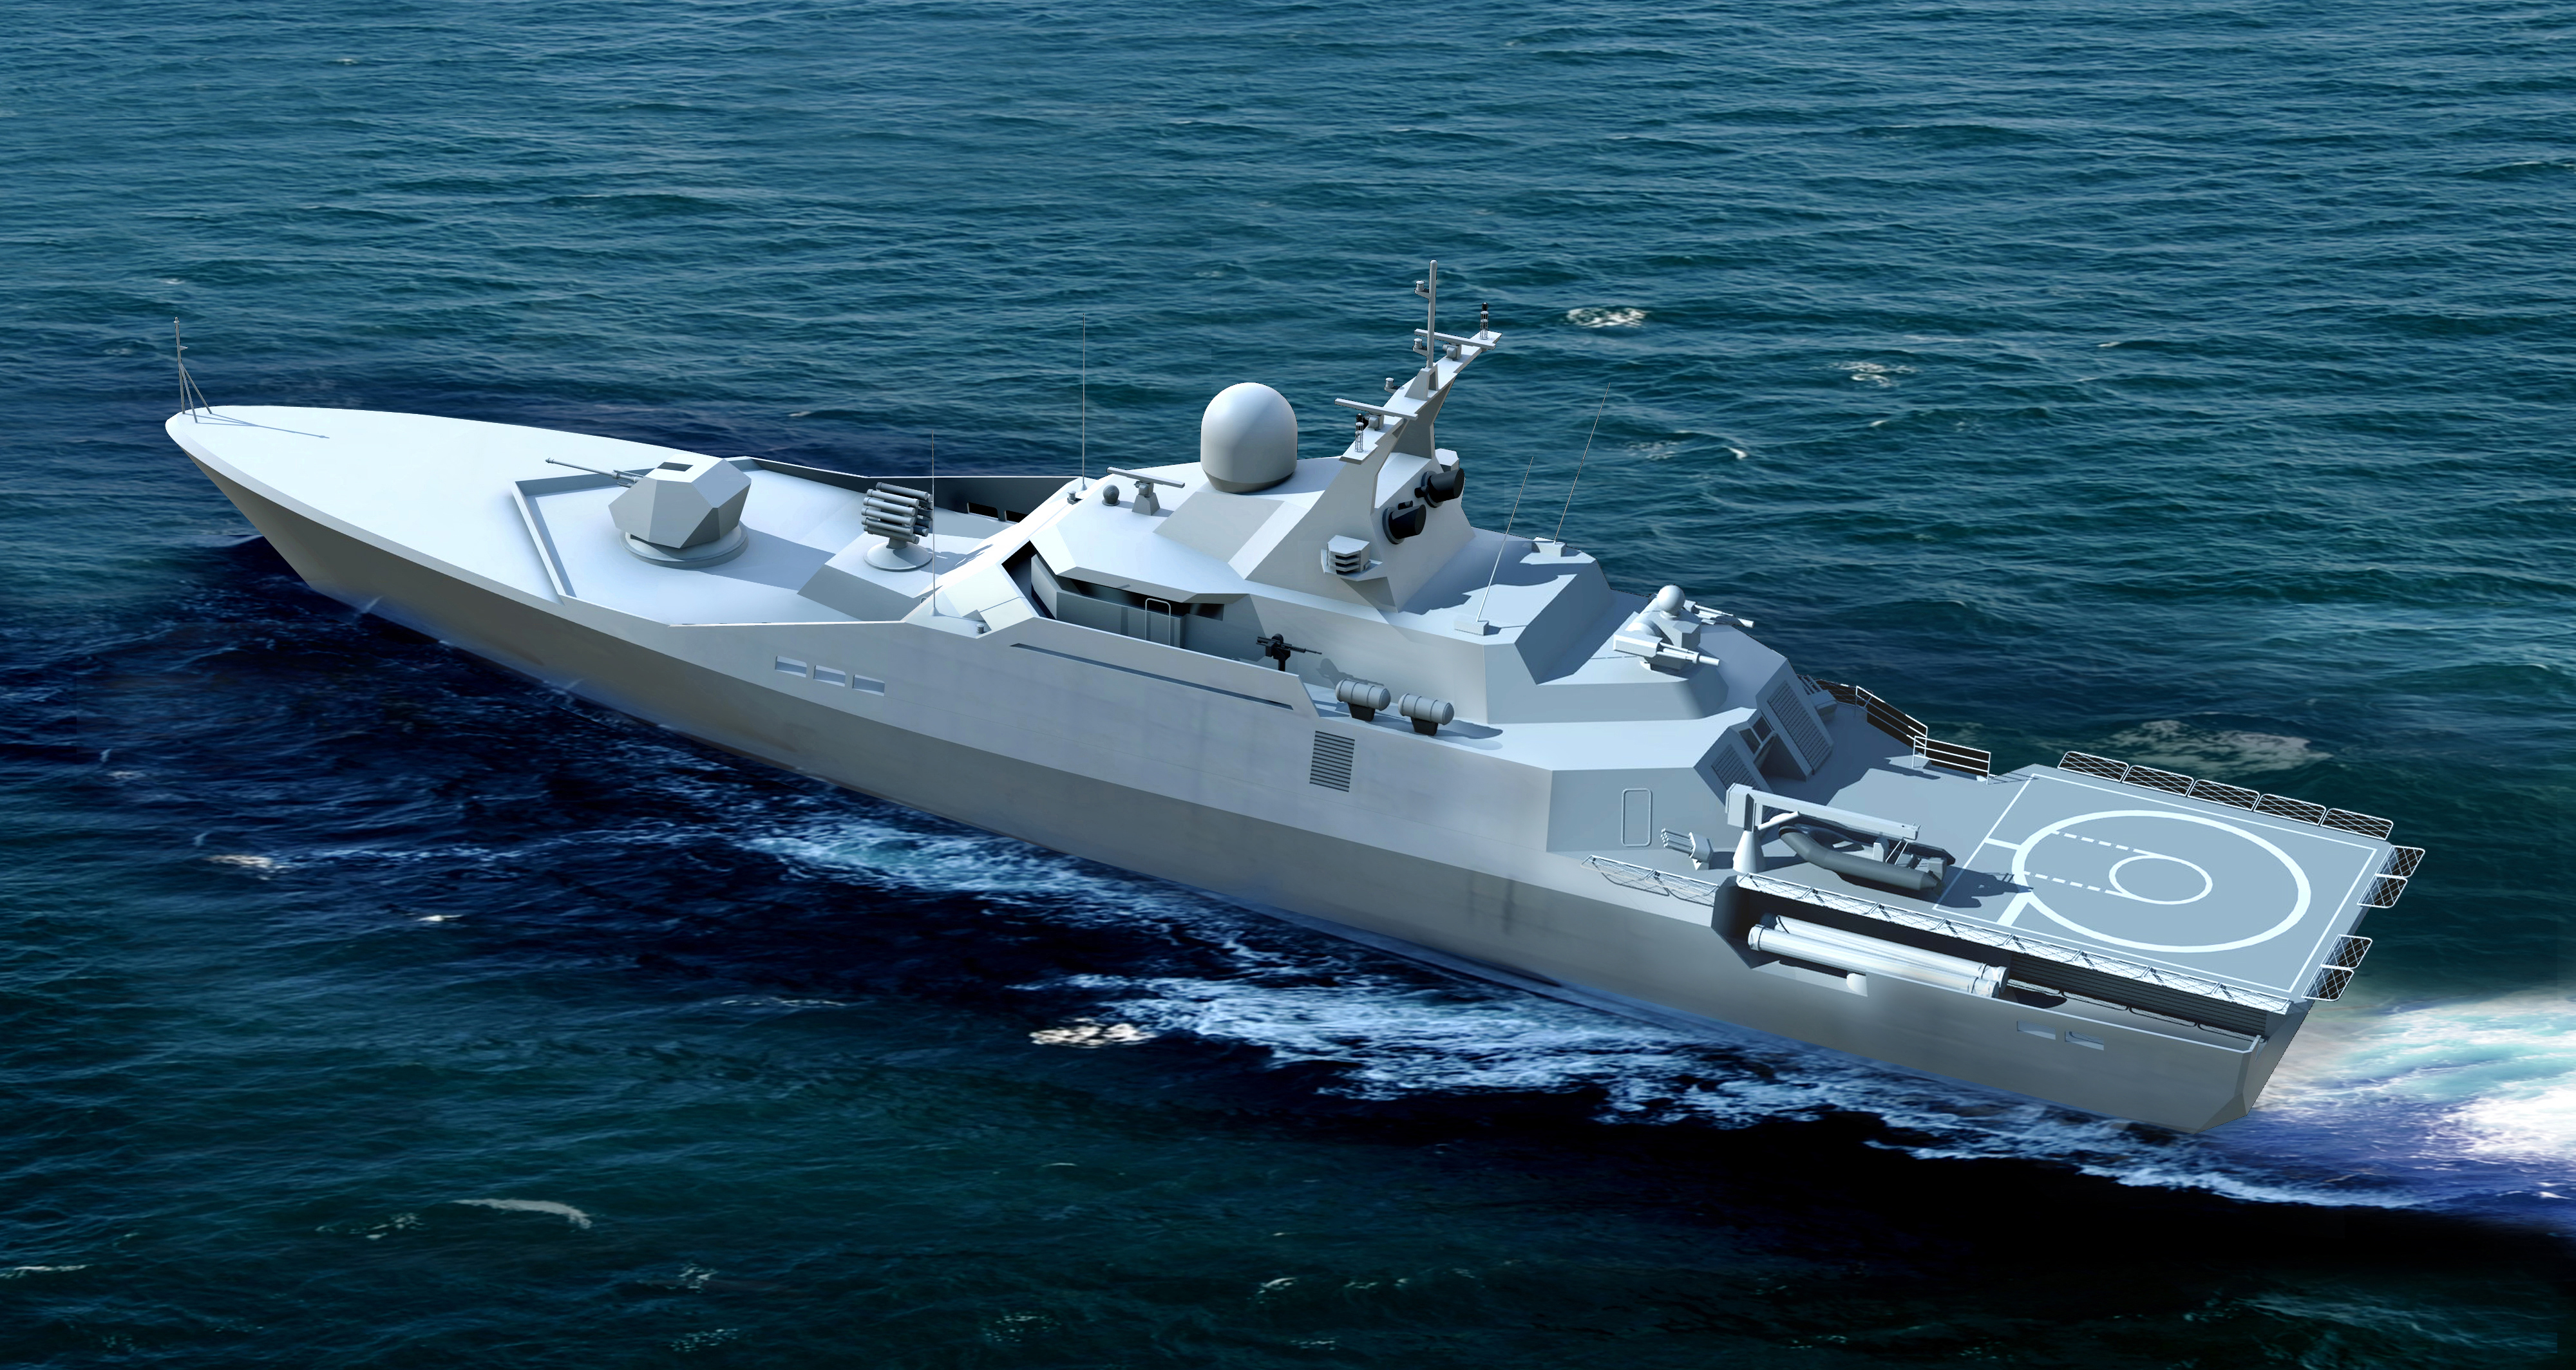 modern helicopter design with New Project 23420 Small Anti Submarine Warfare Ship on Agustawestland also Top 10 Best Free Action Shooters 2016 moreover Watch additionally Fv5i13mrab8e8a84236 as well British Jets Have To Scramble To Escort Russian Bombers From Area.